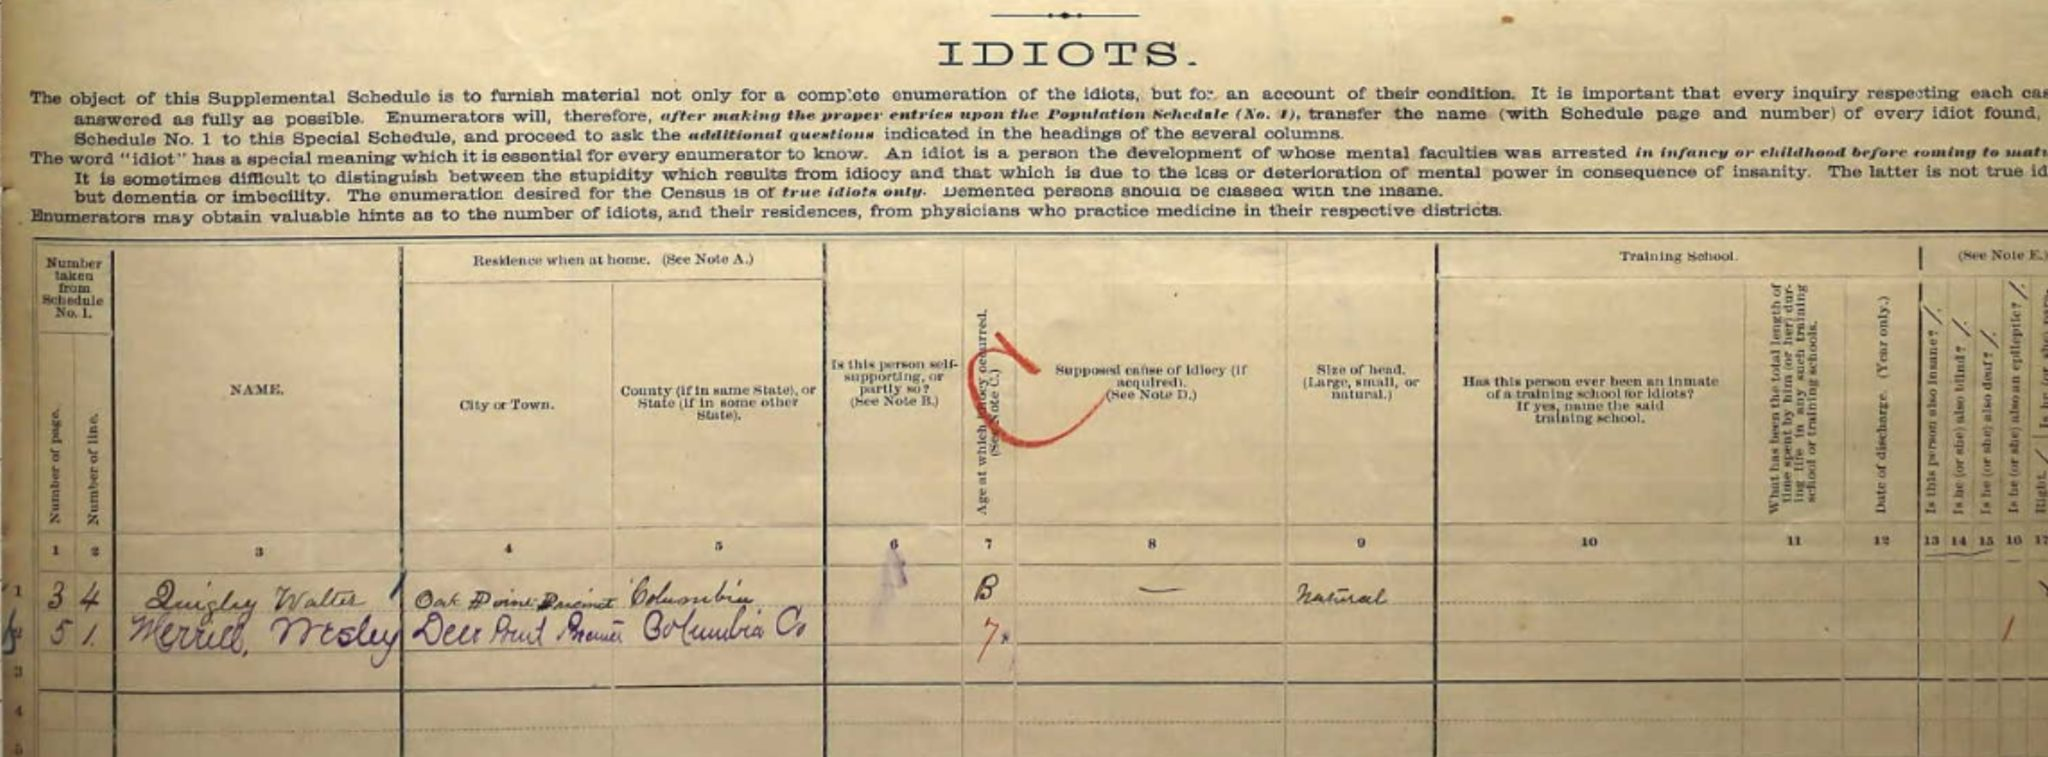 Idiot Schedule 1880 Census